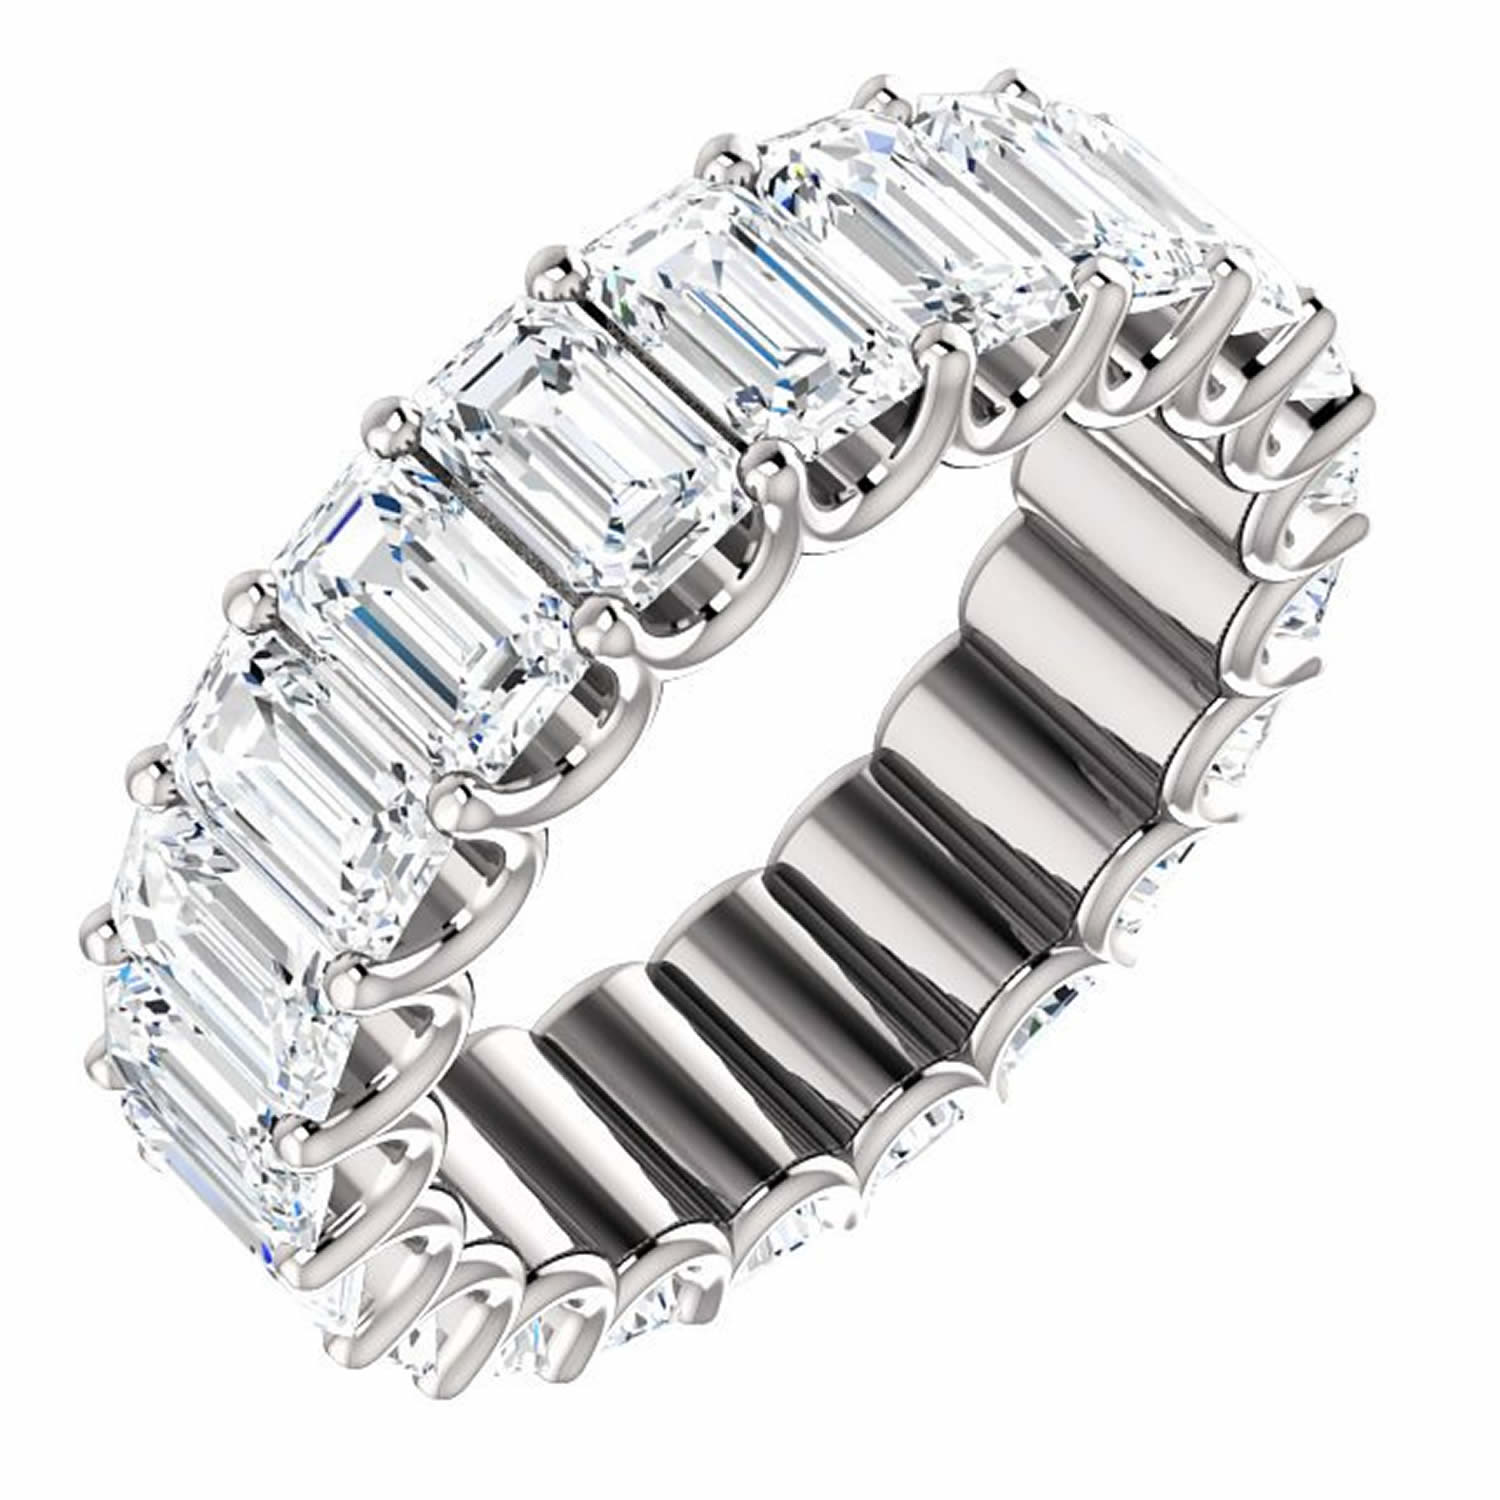 Wedding Ring E Tailer Celebrates 20th Anniversary With A New Line Of Eternity Bands